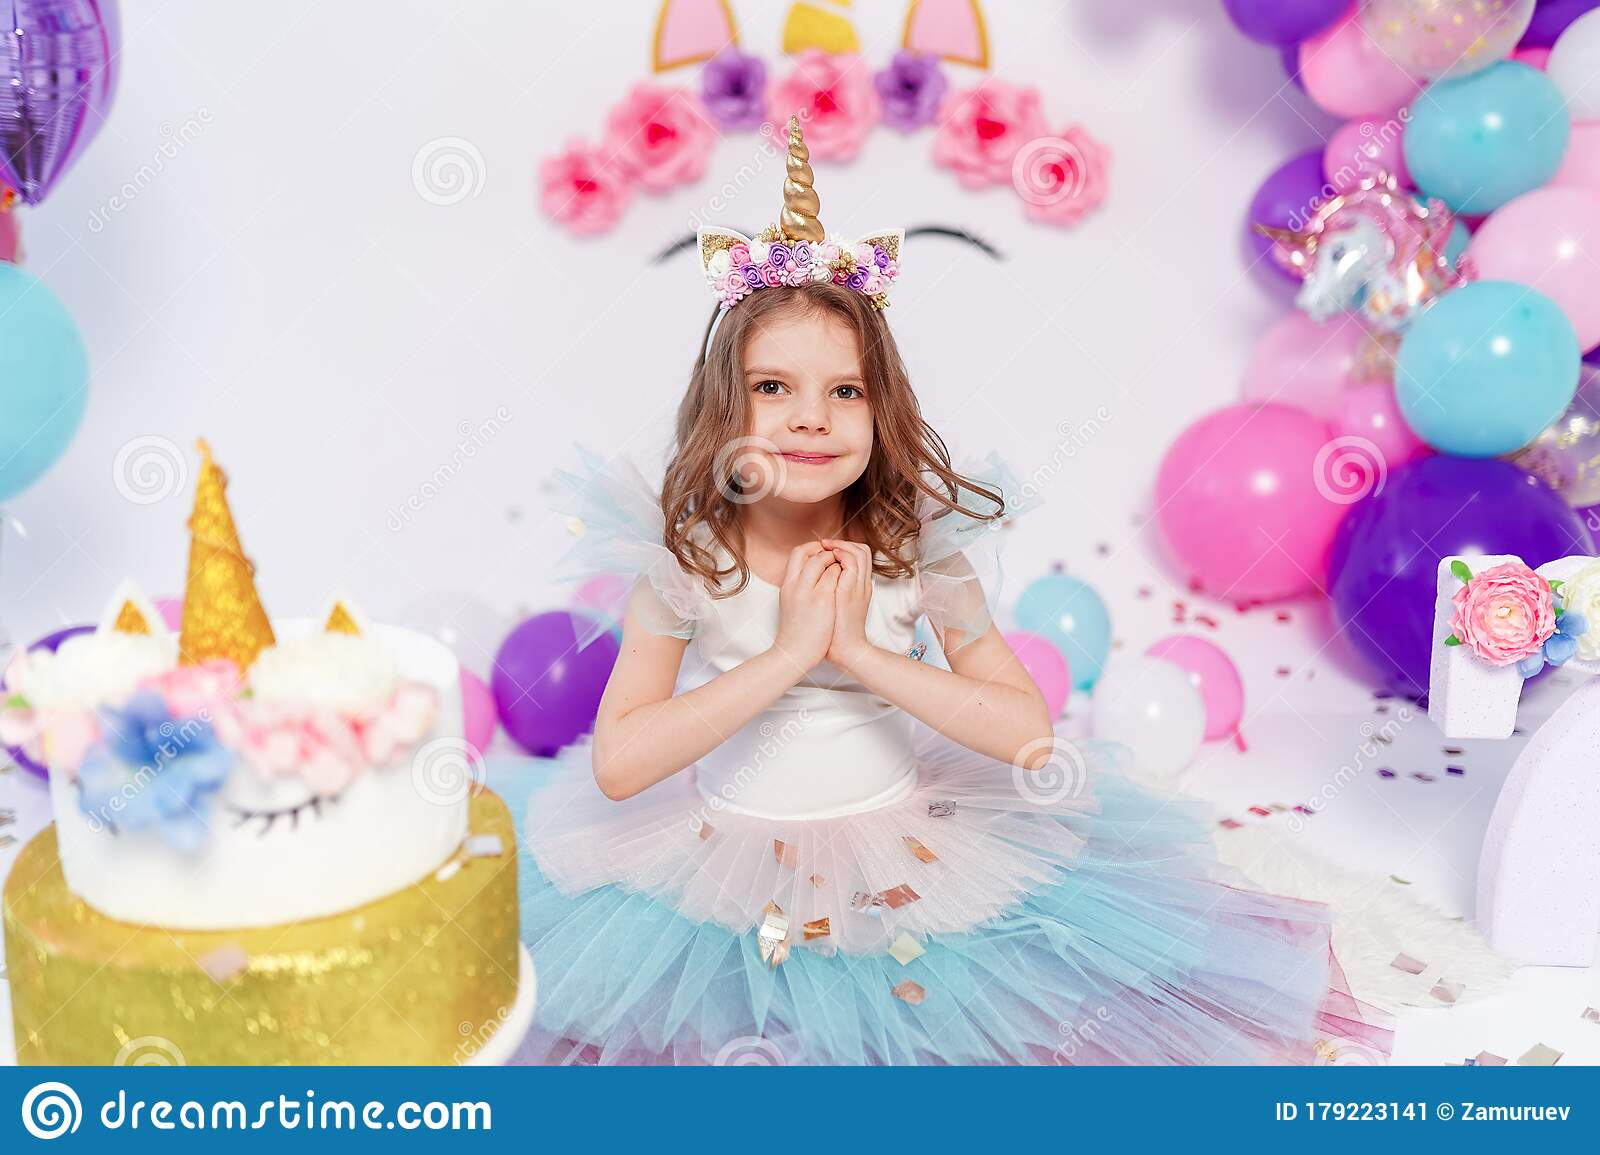 Unicorn Girl Throws Confetti Idea For Decorating Unicorn Style Birthday Party Unicorn Decoration For Festival Party Stock Image Image Of Home Holiday 179223141,How To Make Home Decoration